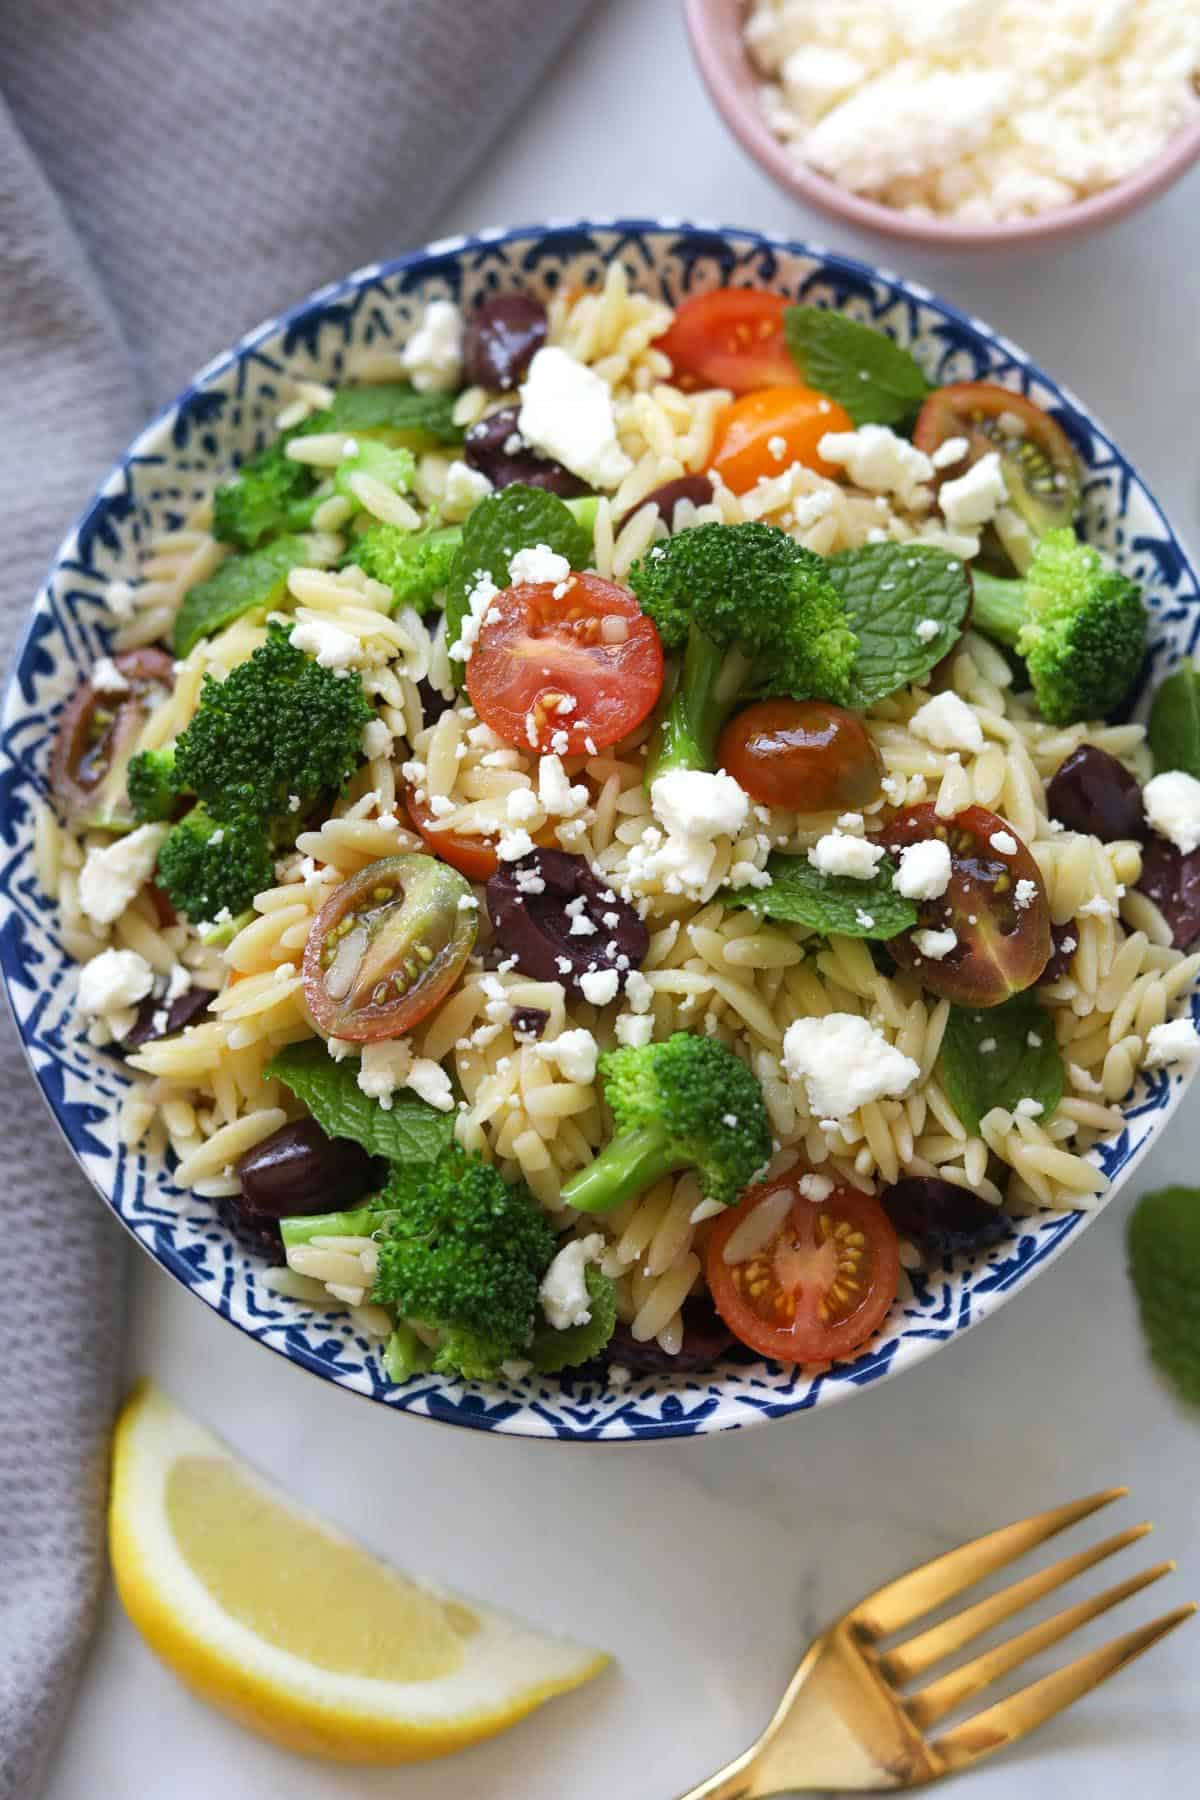 Bowl of orzo pasta salad with broccoli, tomatoes, mint leaves, olives and feta cheese.